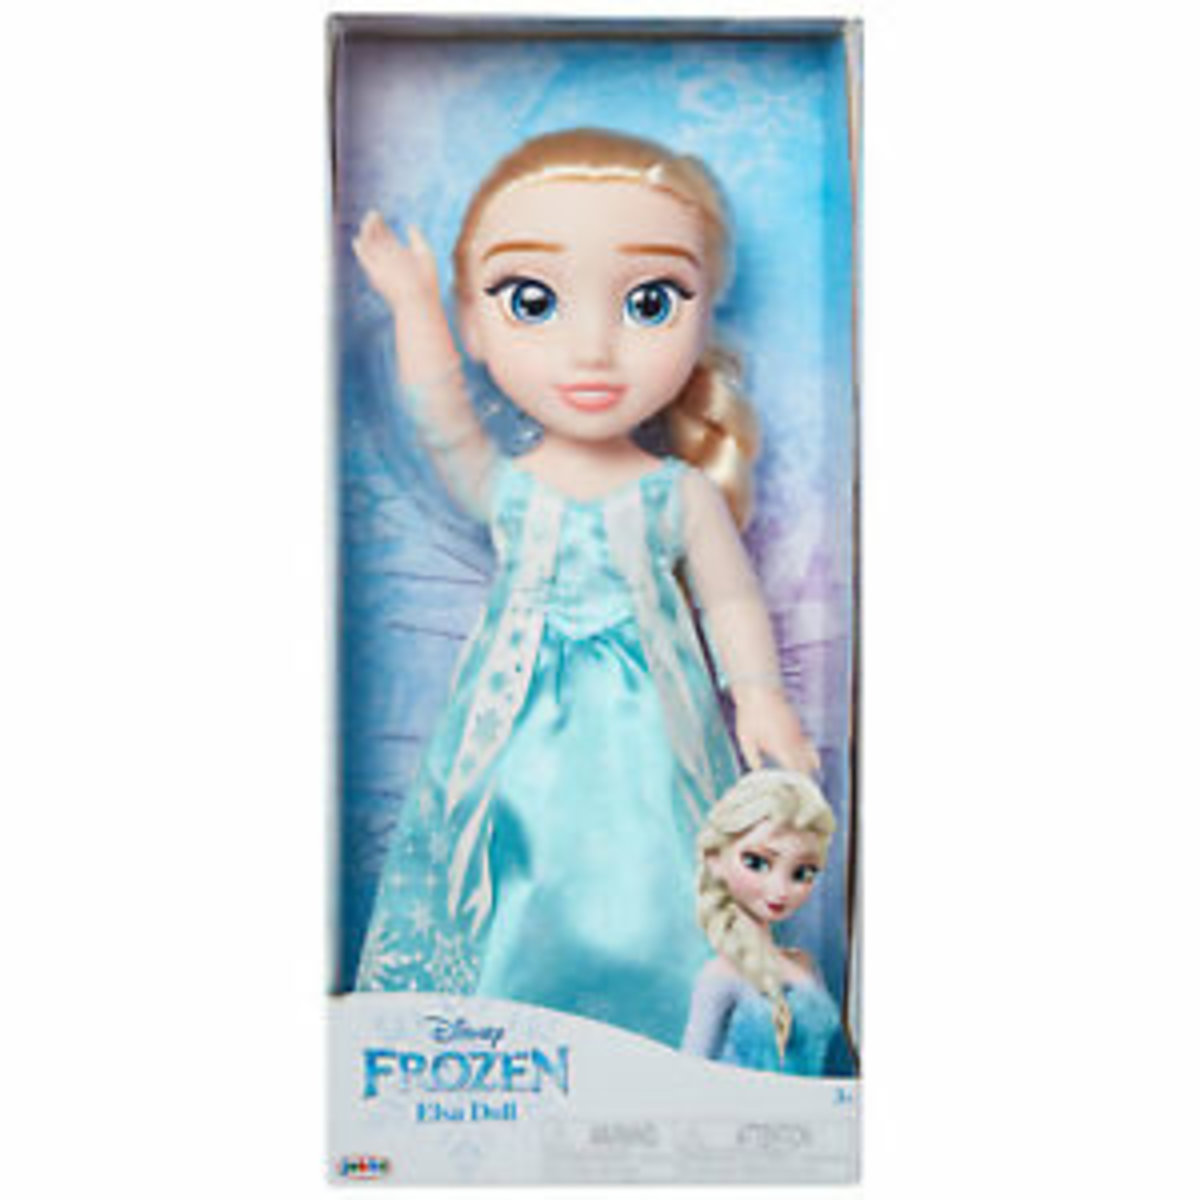 Forzen Core Large Doll - Elsa (2019) [Licensed by Disney]